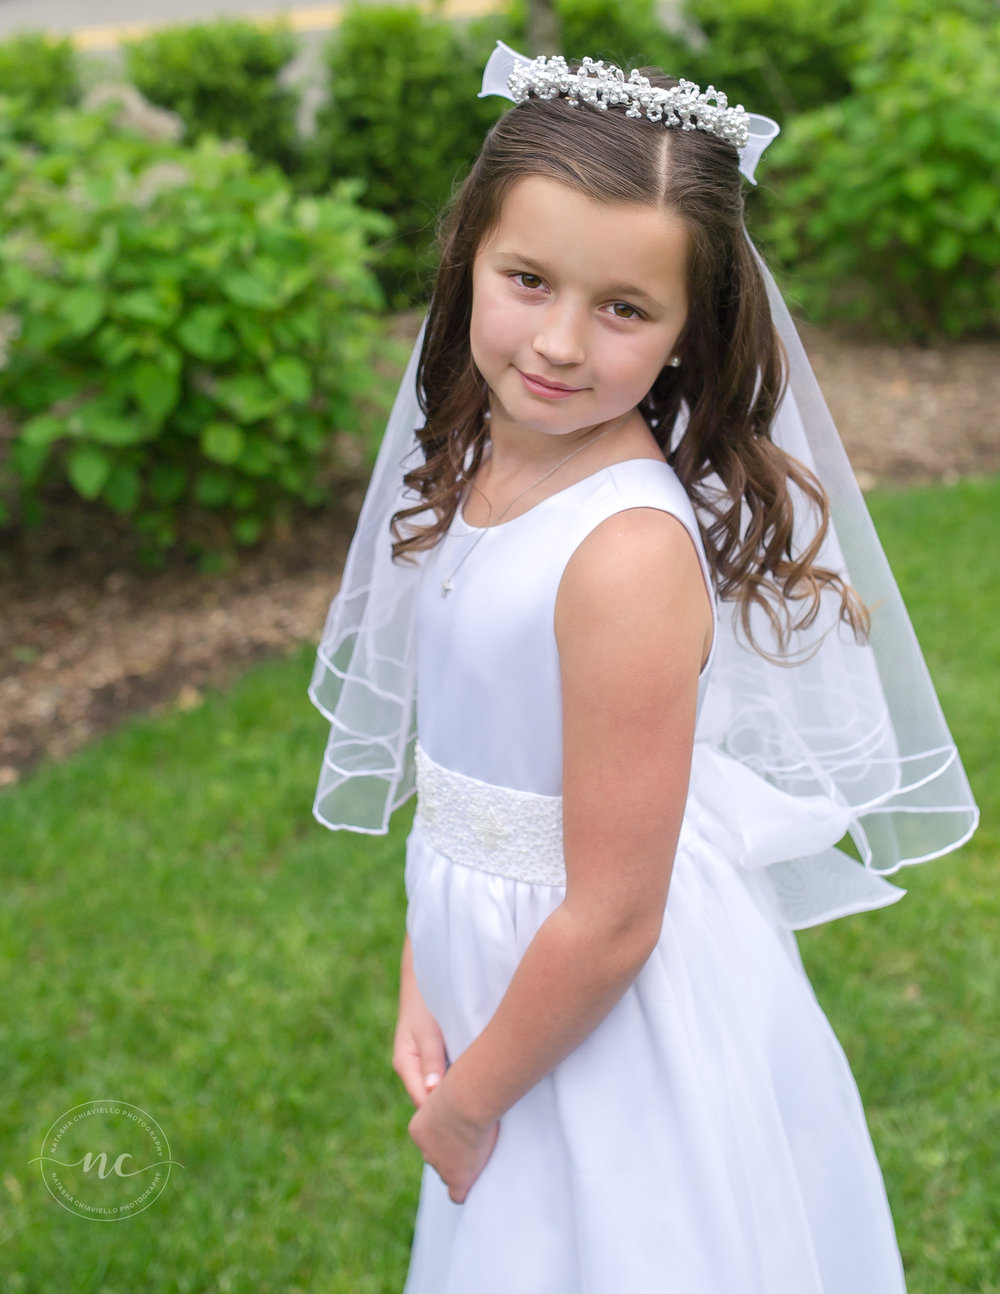 communion dress and details